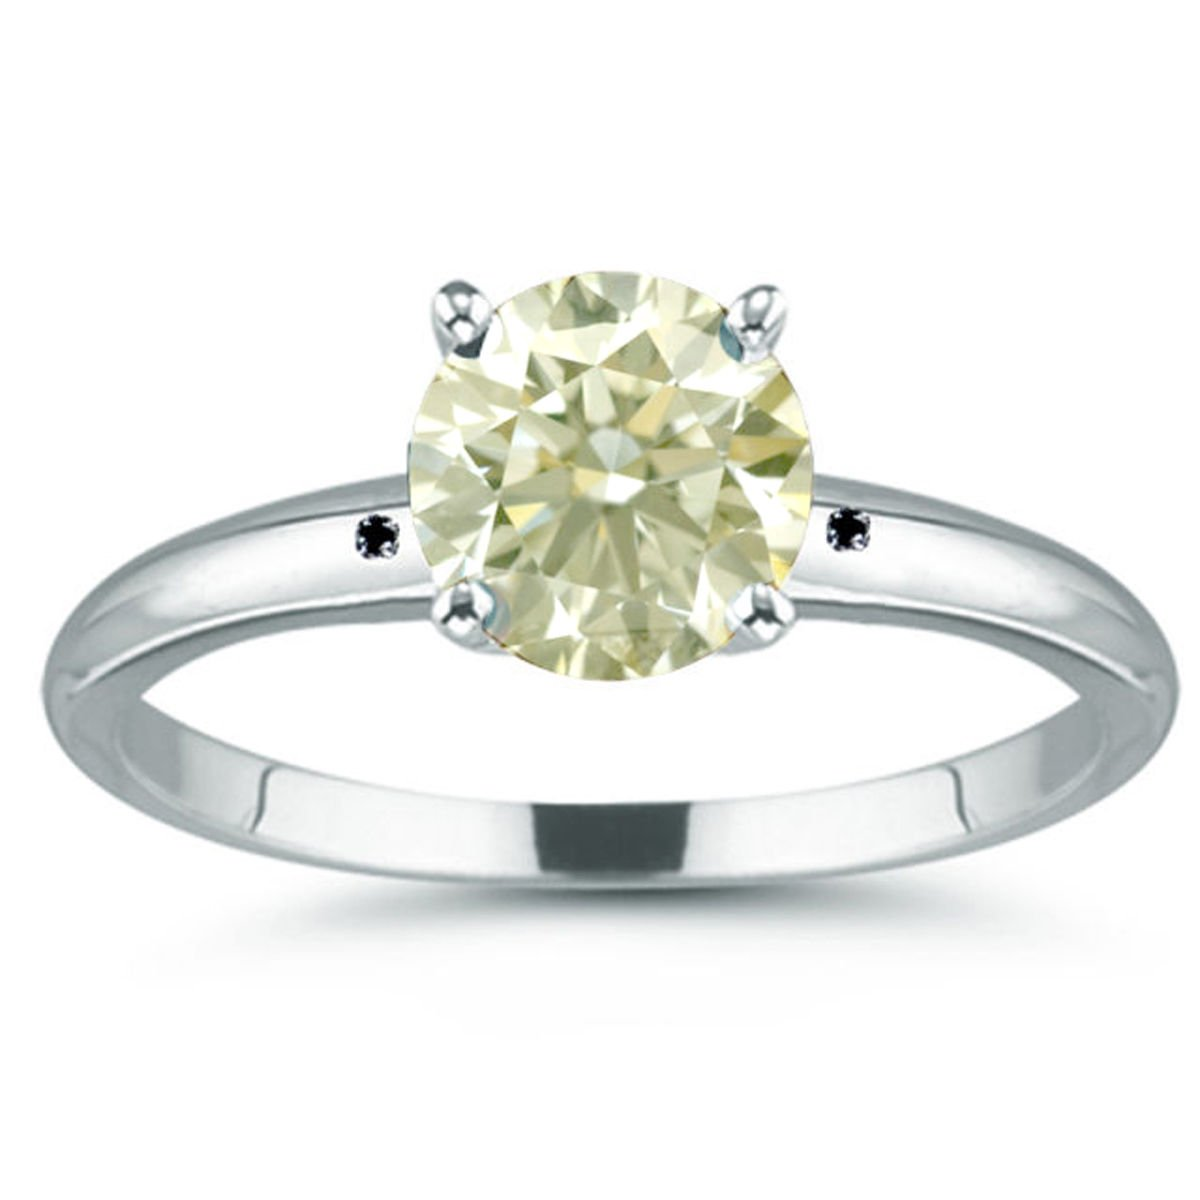 RINGJEWEL 4.88 ct VVS1 Round Moissanite Solitaire Engagement Silver Plated Ring Off White Color Size 7